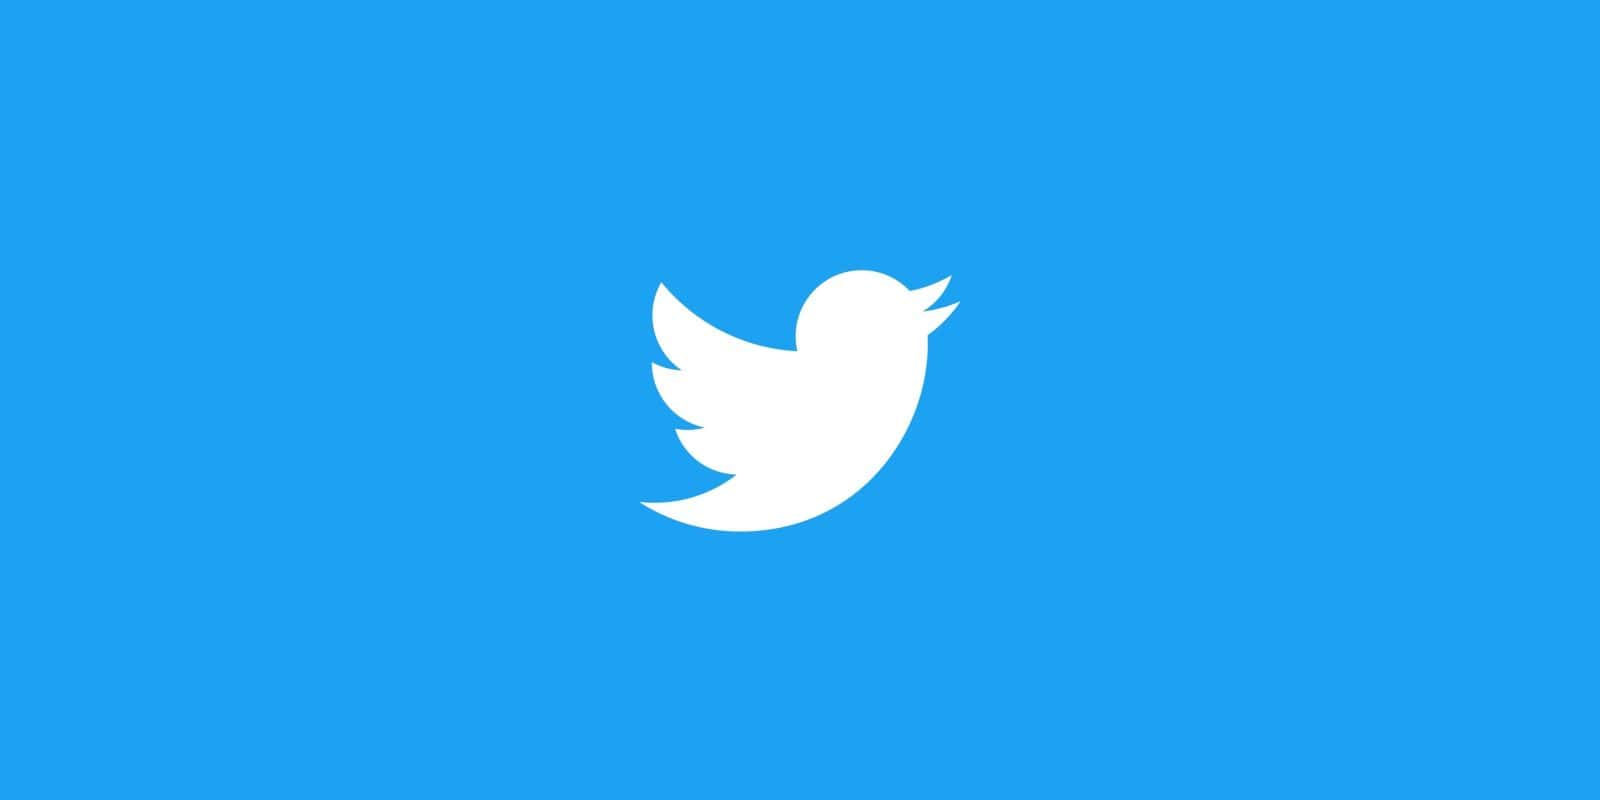 twitter-has-appointed-a-compliance-manager-for-its-subset-in-india - چیکاو